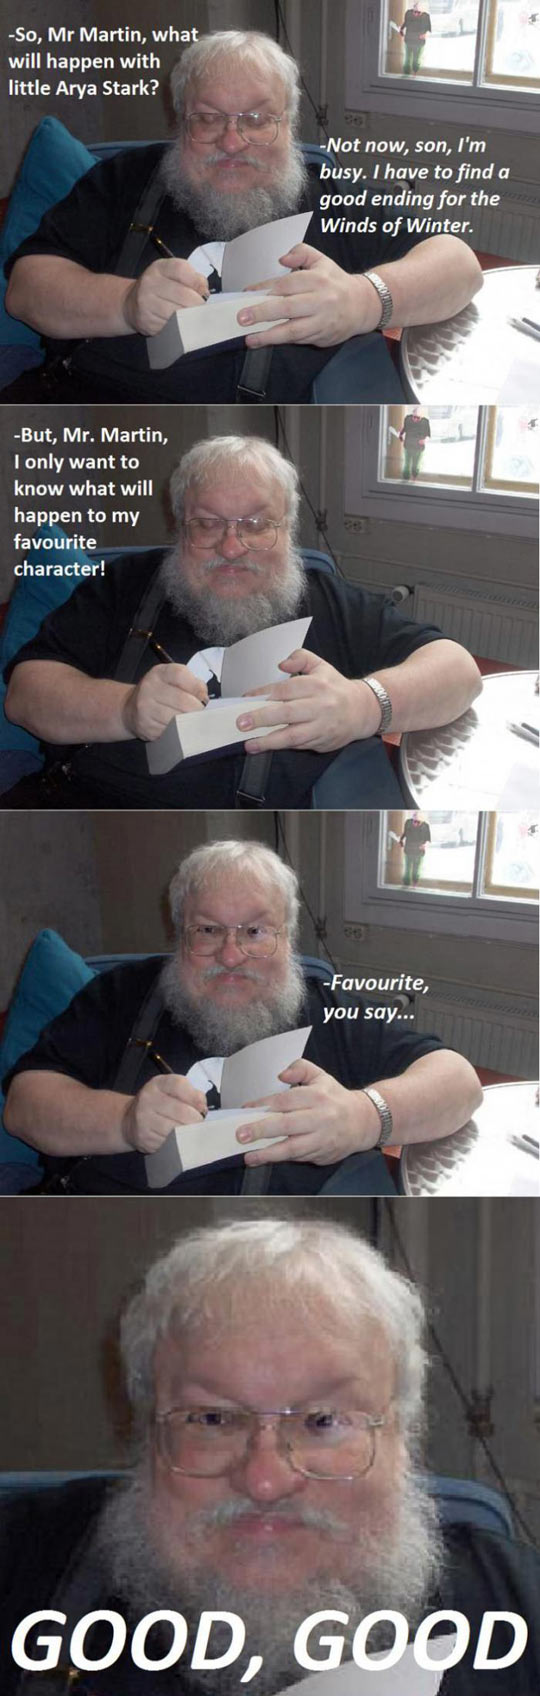 funny-George-Martin-character-writing